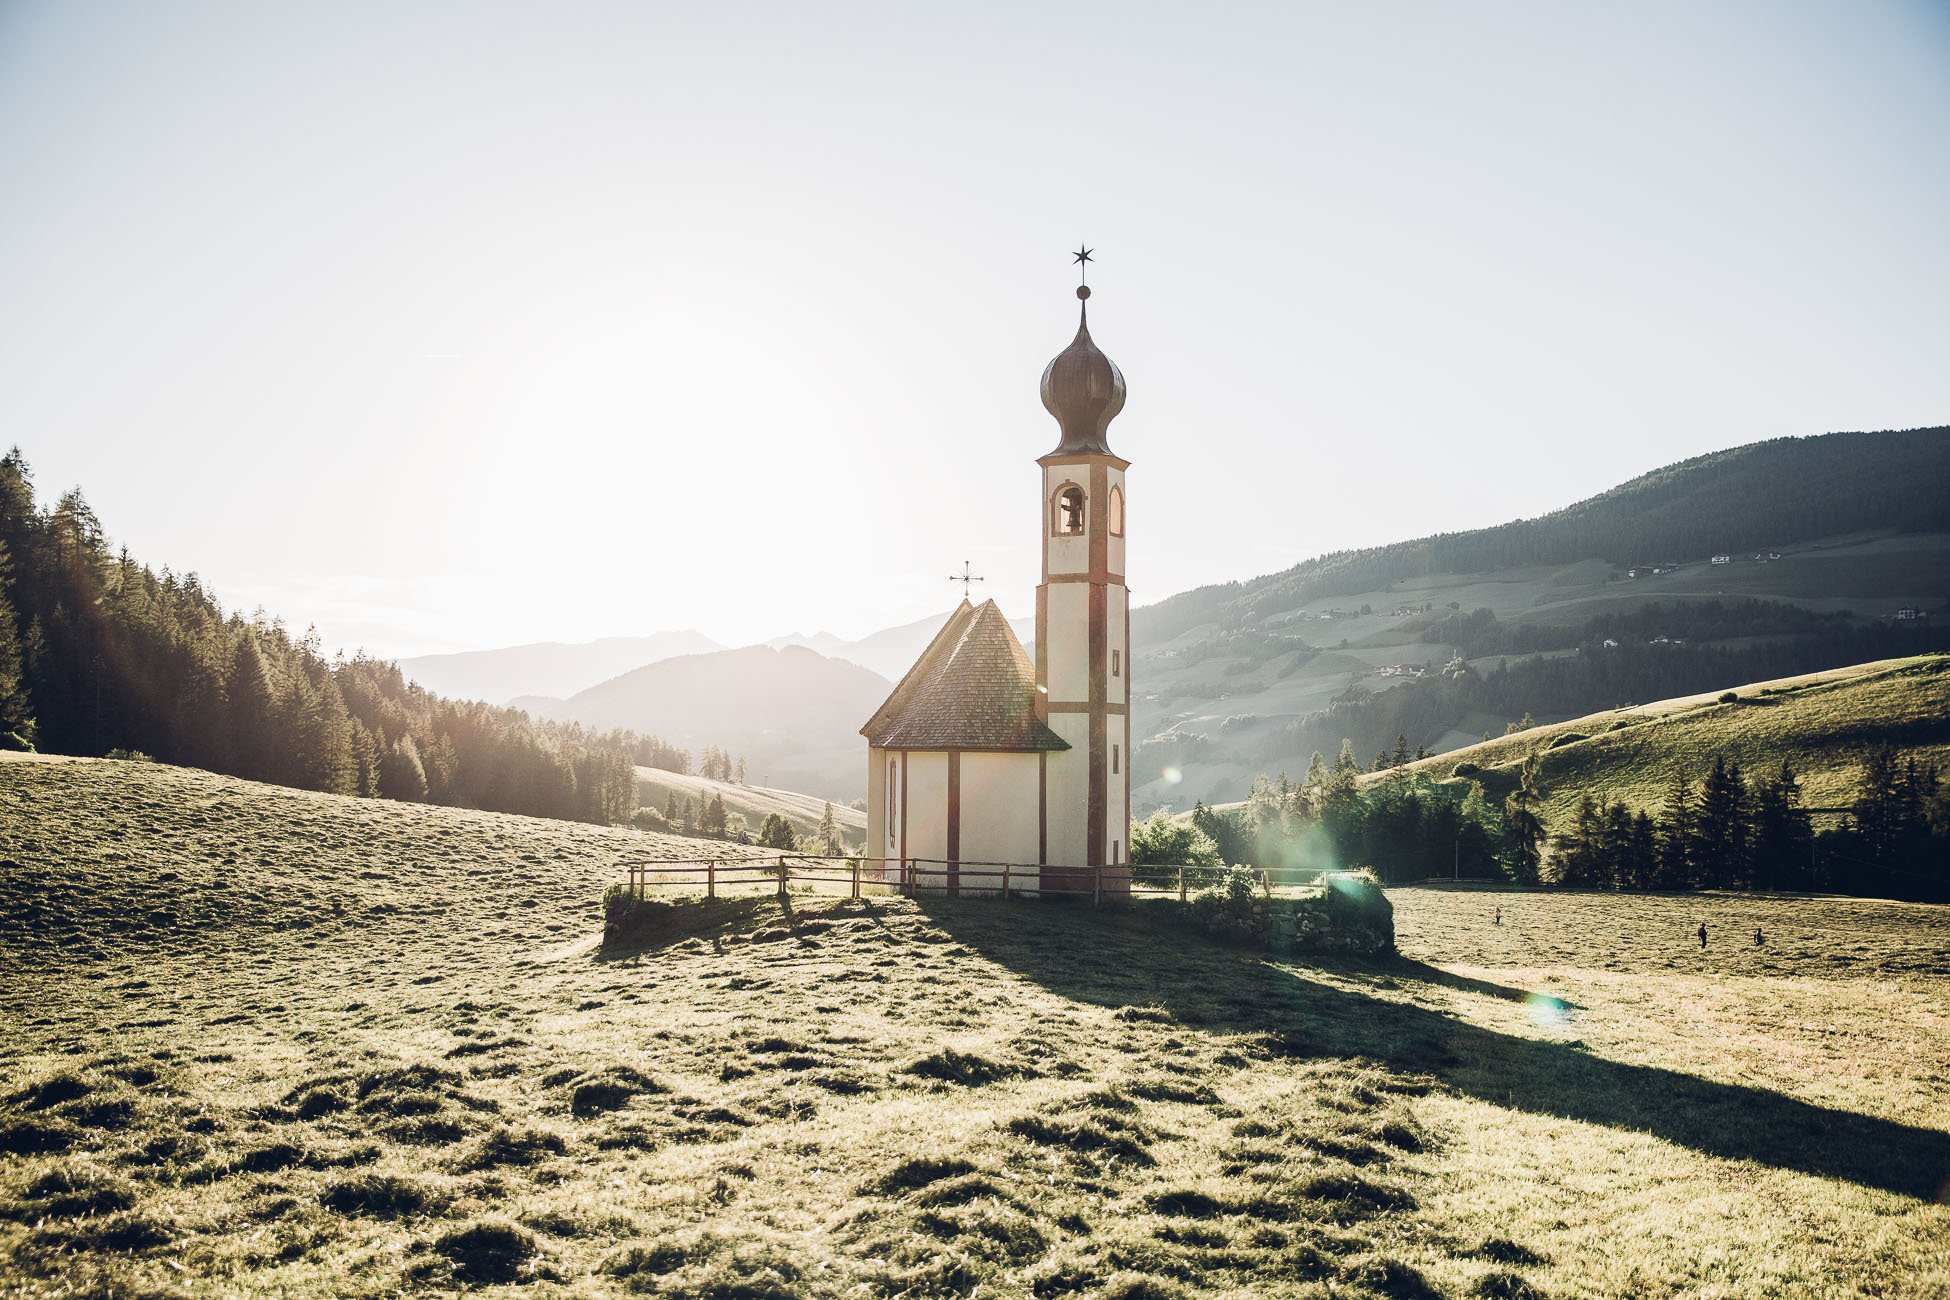 Ranui church in South Tyrol